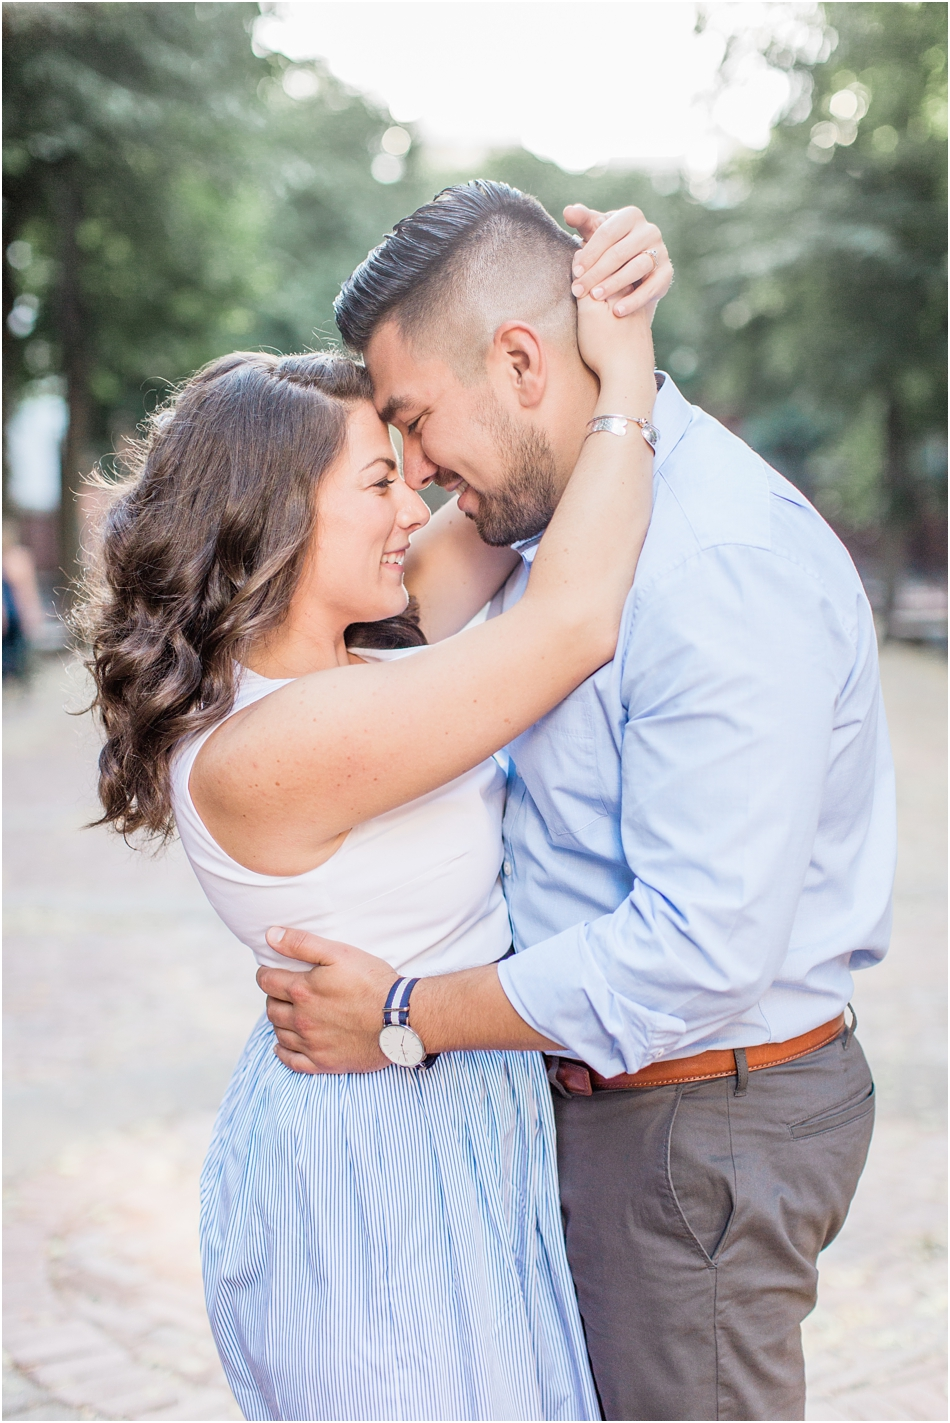 north_end_downtown_pizza_little_italy_engagement_boston_massachusetts_cape_cod_new_england_wedding_photographer_Meredith_Jane_Photography_photo_1737.jpg